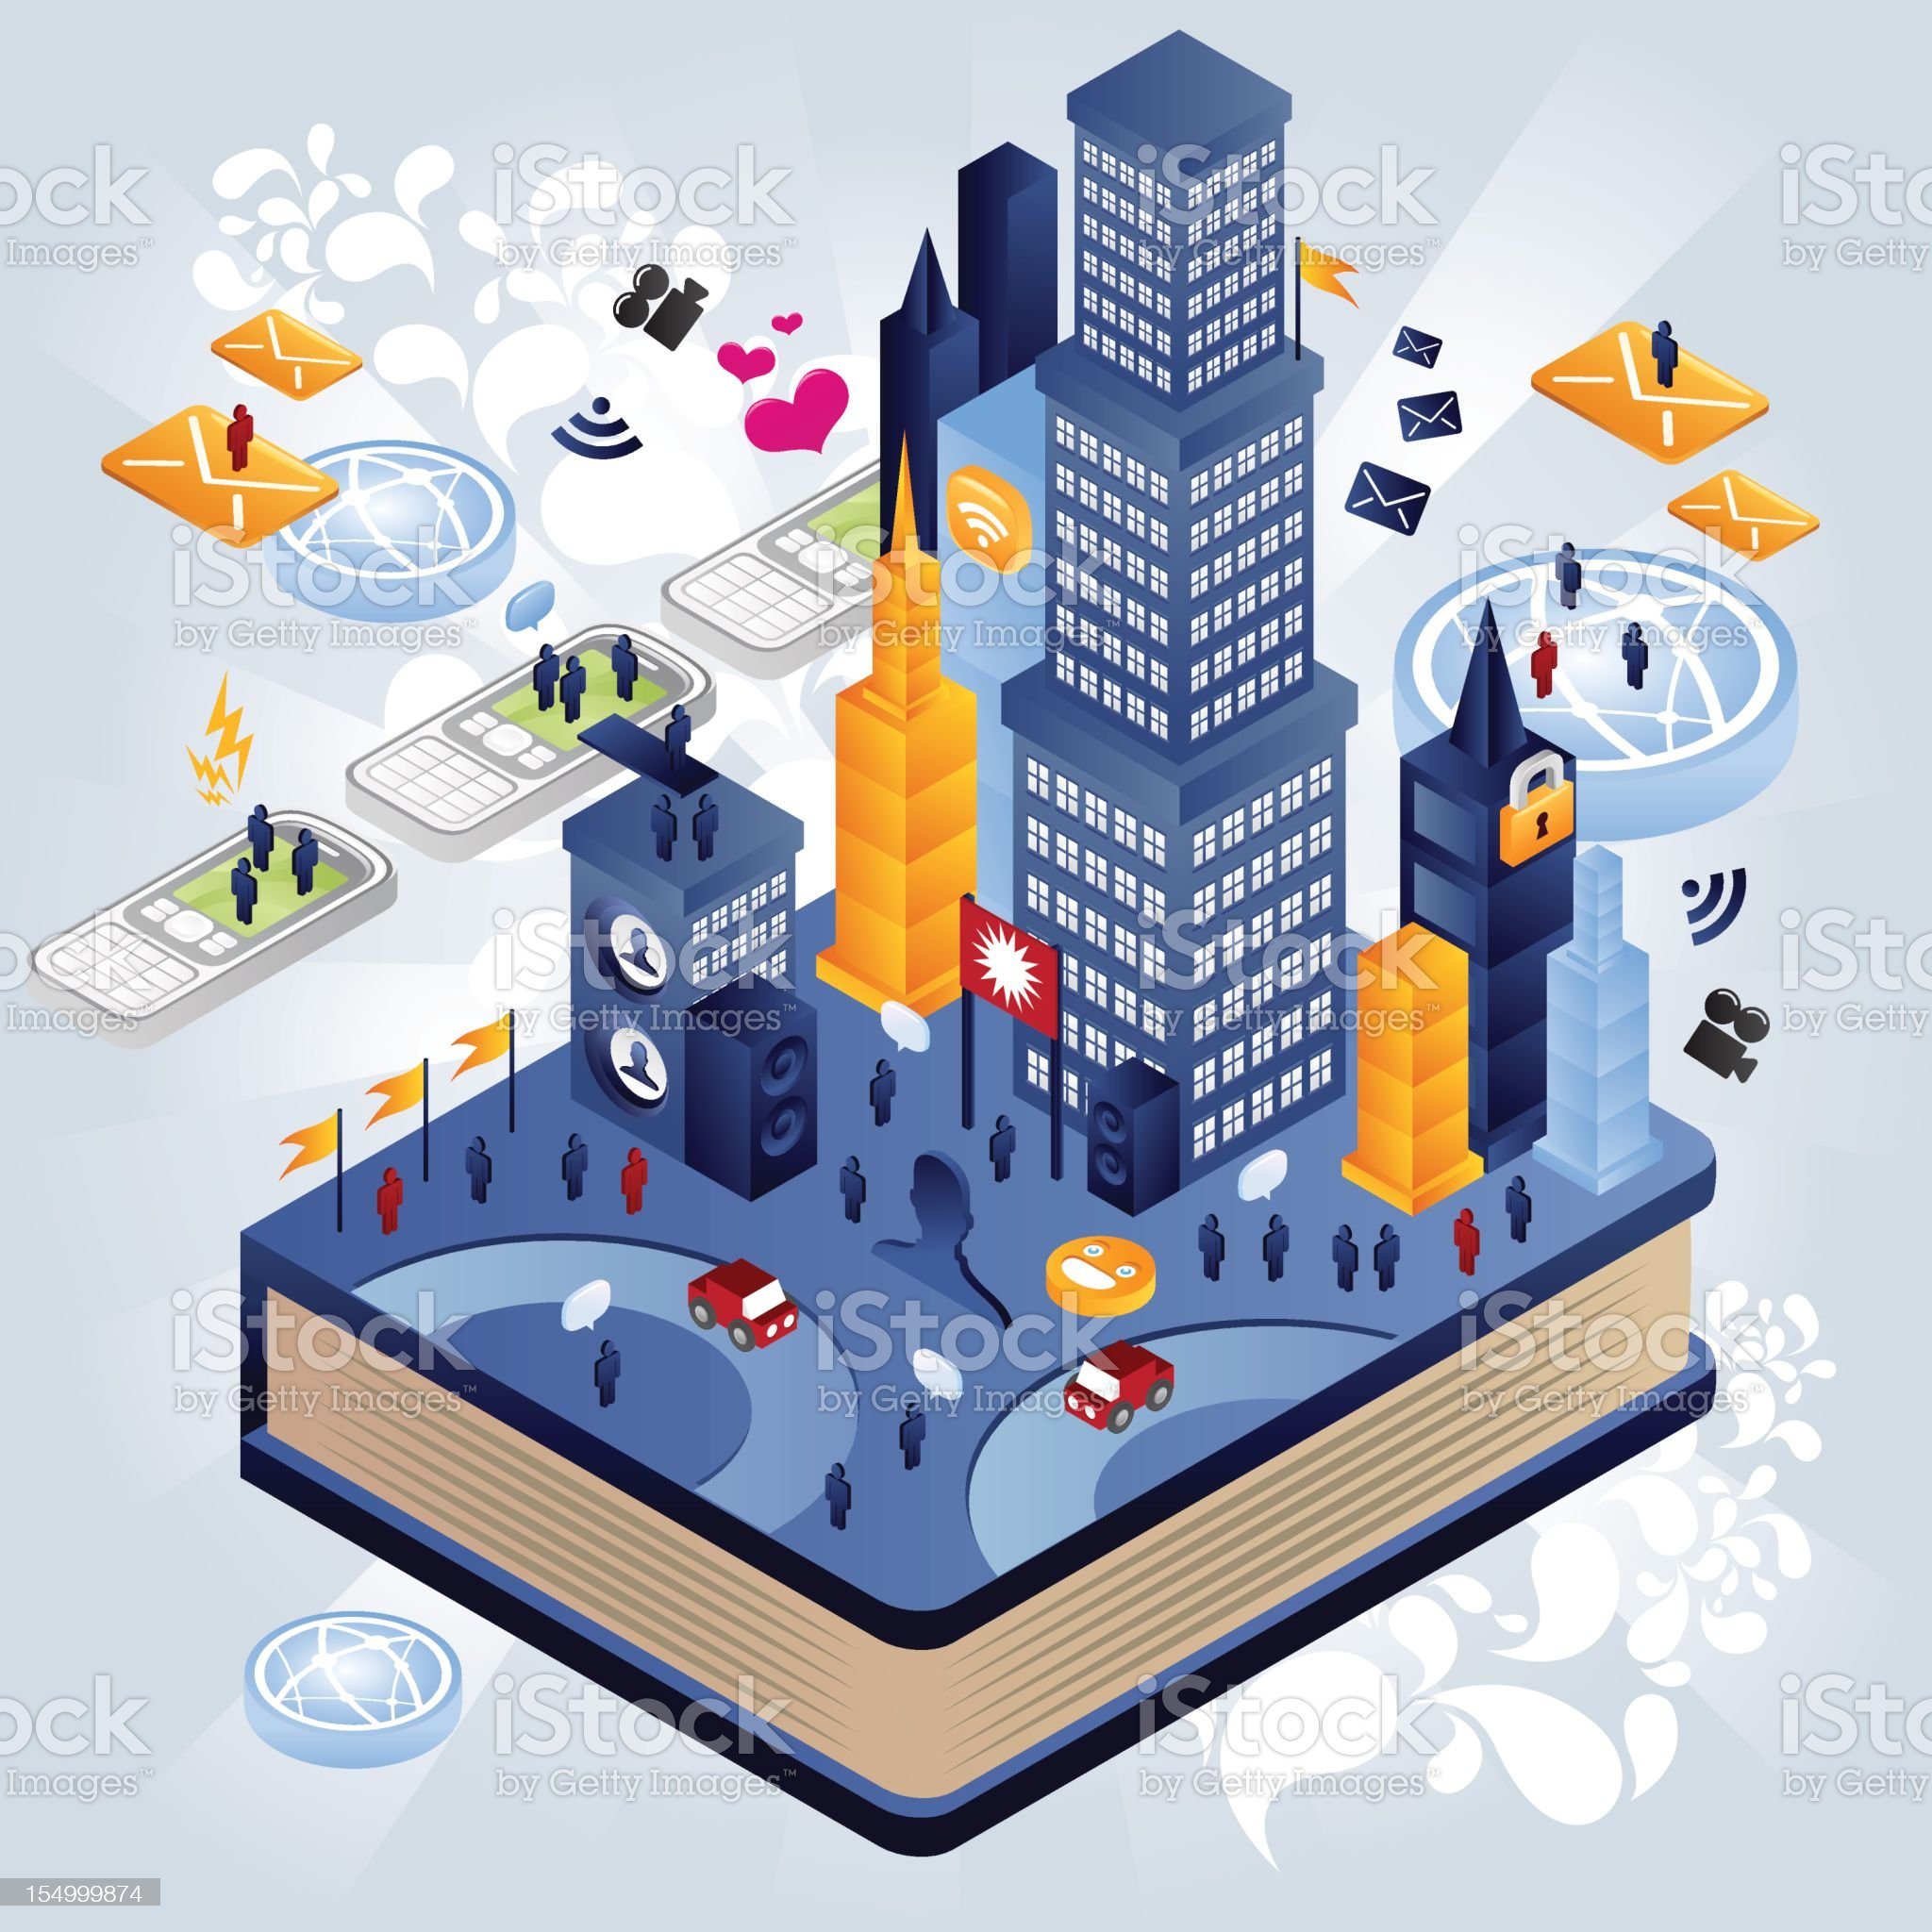 The city of book royalty-free stock vector art